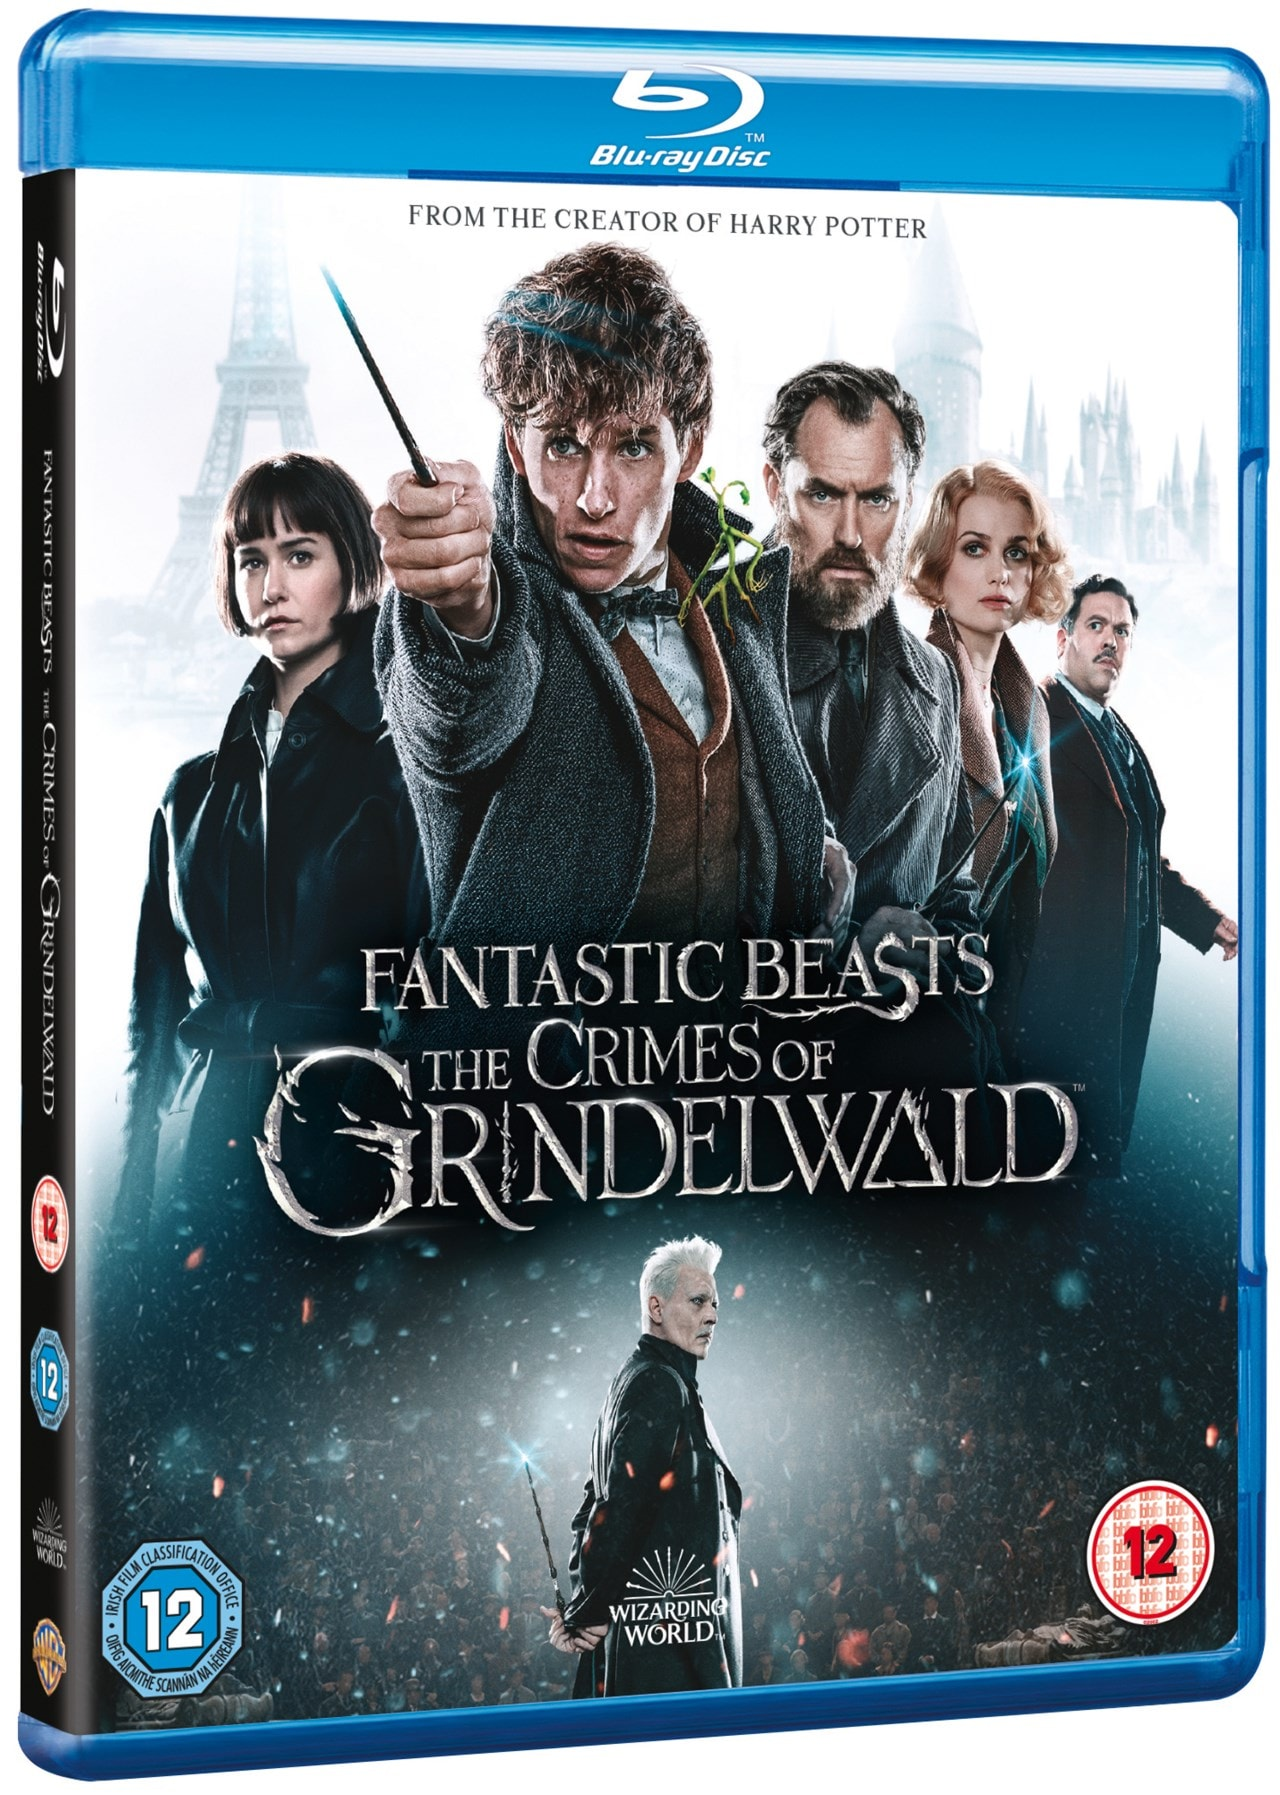 Fantastic Beasts: The Crimes of Grindelwald - 2